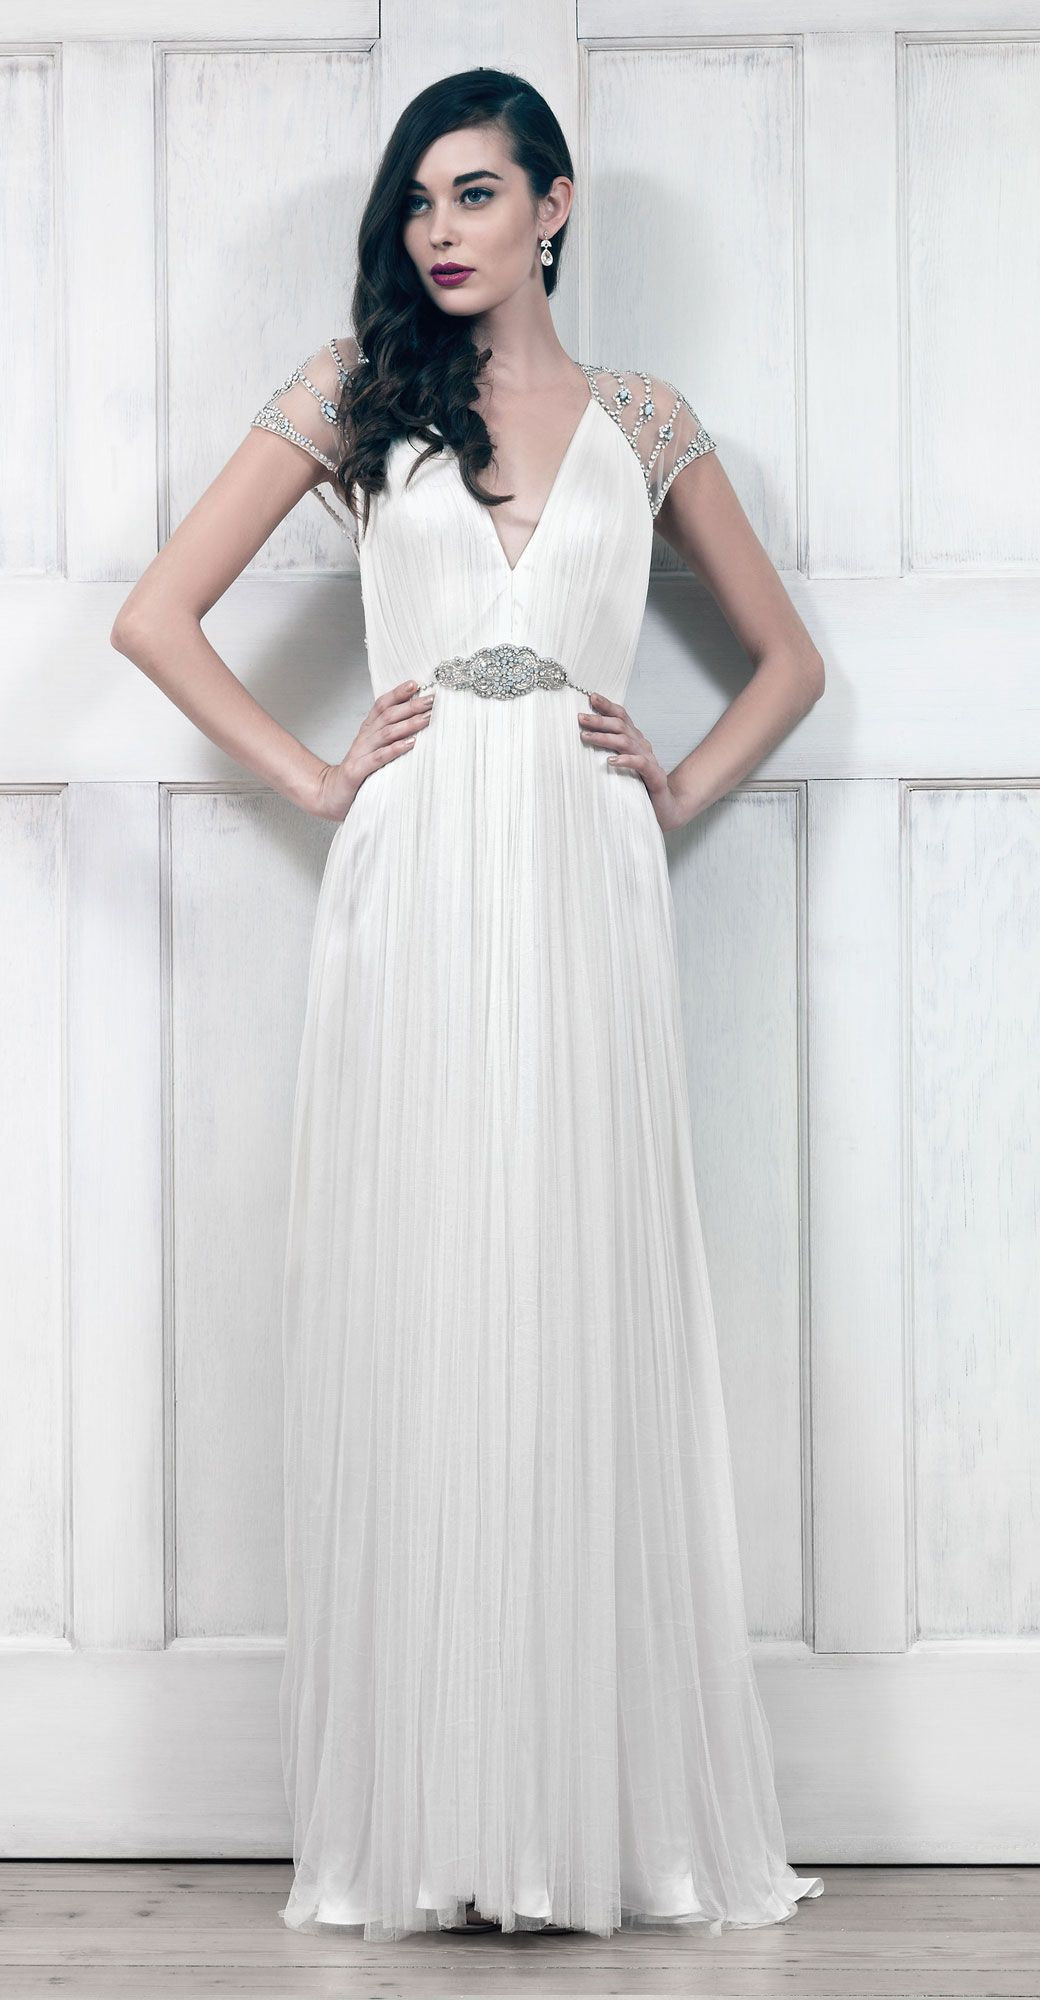 catherine deane | tallulah gown | silk tulle gown | intricate beaded ...